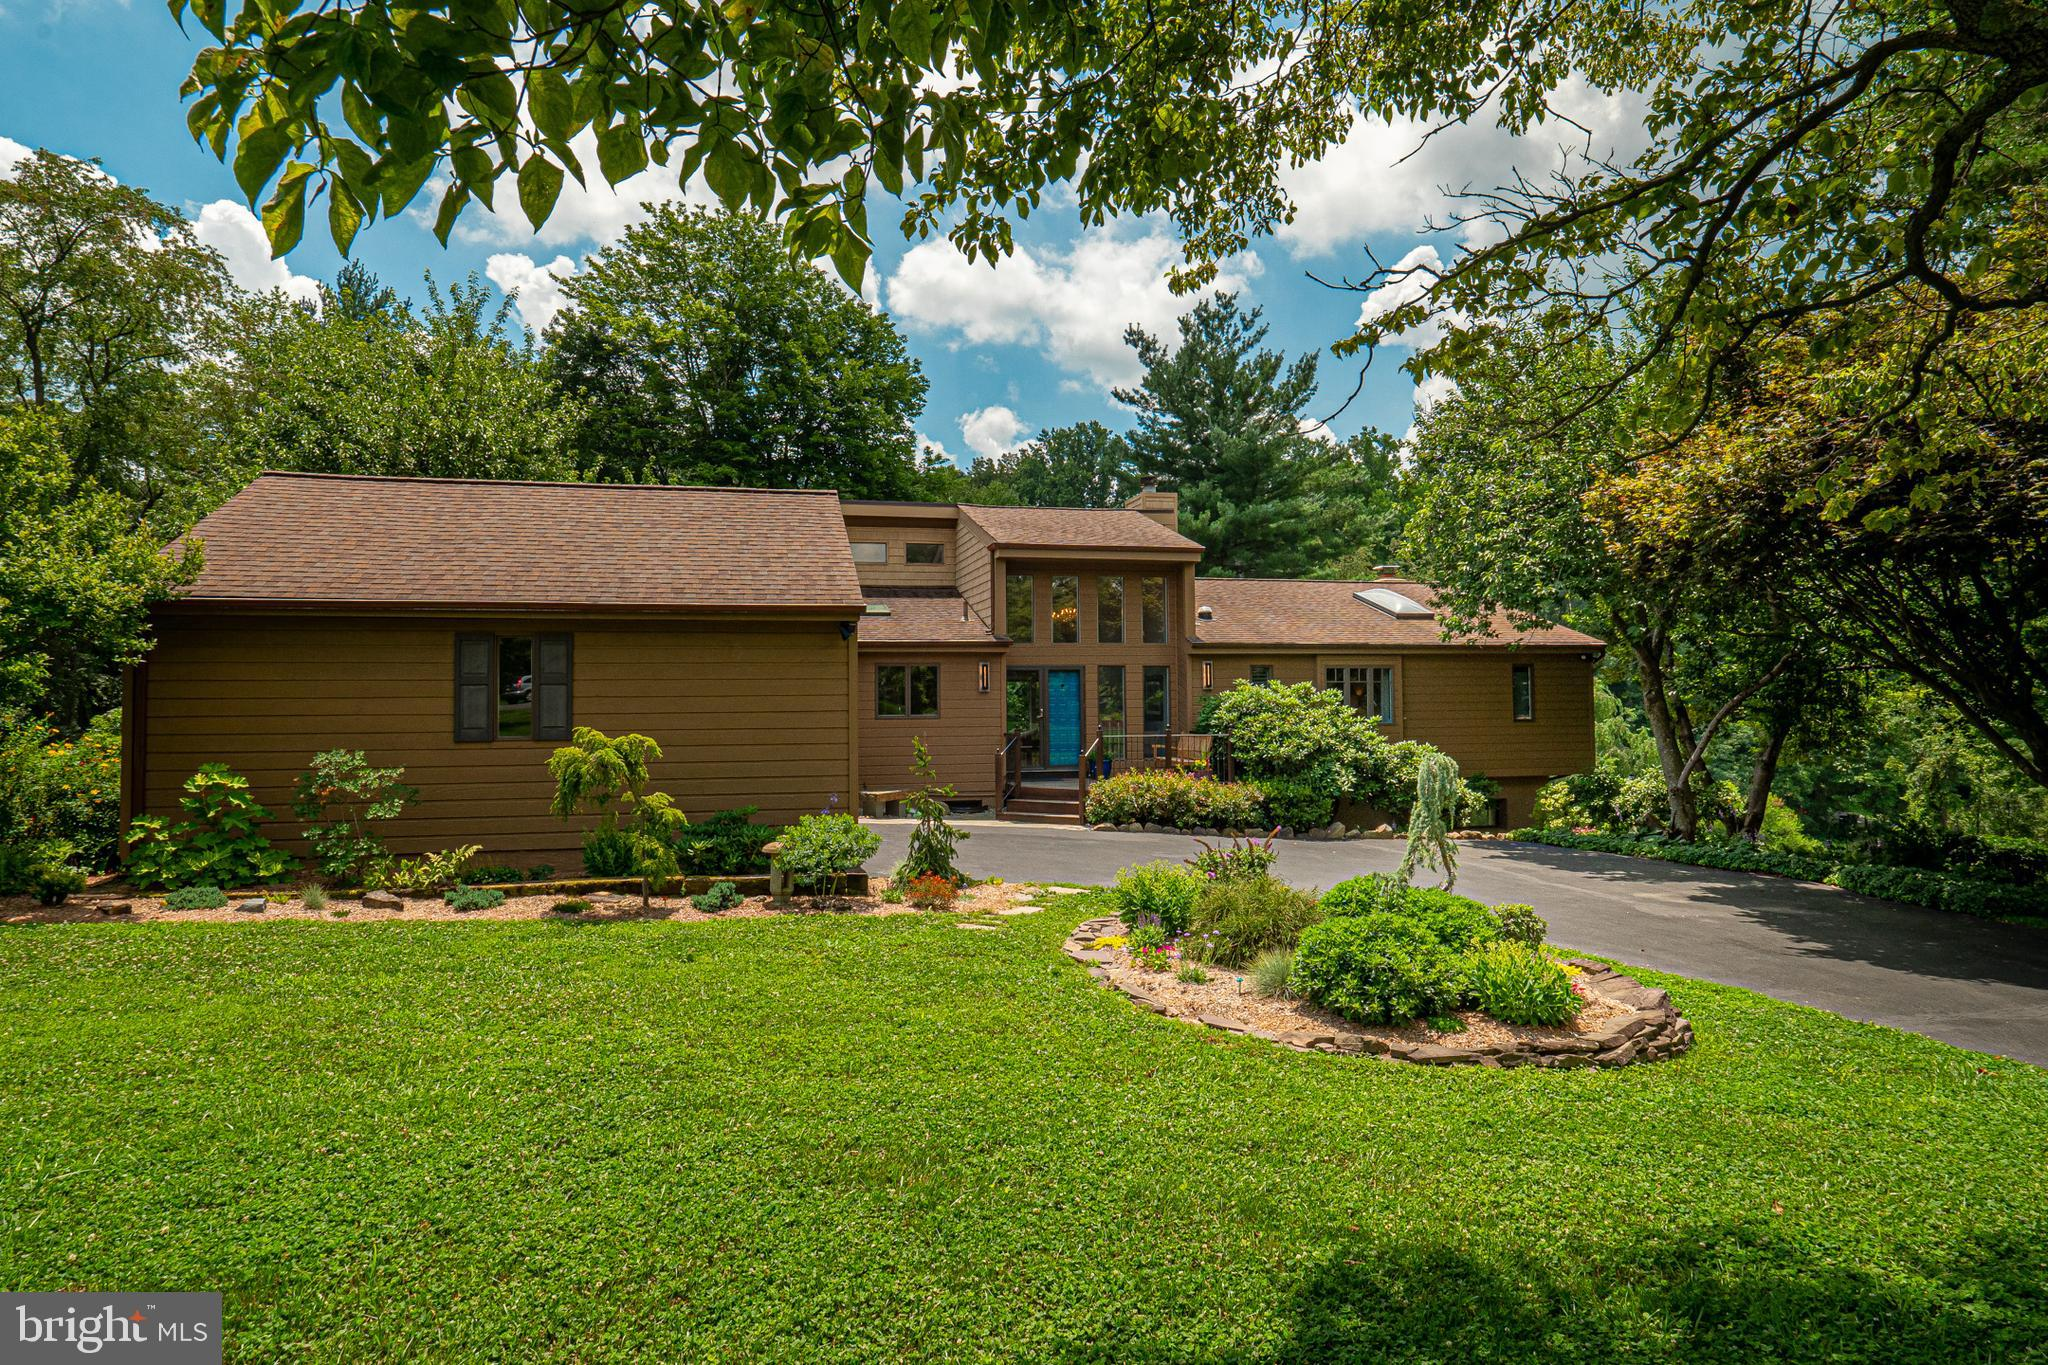 Sunday open house 7/17 from 1-3 pm has been canceled. Be prepared to fall in love with this light-filled, spacious 5-bedroom, 3 full bath home in the award winning Unionville Chadds Ford School district.  As you enter the two-story foyer you are greeted with gorgeous views of the lush green open space that surrounds this home.  Step down into the living room with vaulted ceiling and fireplace, the floor plan flows easily to the lovely dining room, open kitchen and the sliding doors that lead you out to the amazing deck which has plenty of space to relax and enjoy the outdoors. This home provides one story living as 2 of the 5 bedrooms are on the entry level.  The large main bedroom has its own deck and a delightful bathroom with walk-in shower and soaking tub.  The lower level has the perfect flex space.  The downstairs family room with fireplace opens onto the brick patio which is the perfect place to entertain and watch the sunset.  Three additional bedrooms, a full bath and lots of storage complete this wonderful flex space. Don't forget to check out the heated garage which is easily accessed through the mudroom laundry area.   Some of the outstanding features of this home include: Geothermal HVAC installed in 2014, gutter guards, new roof in 2014, New 100 gallon water heater, freshly painted entire interior including trim, New granite and Corian countertops in kitchen, New range, New microwave, New Dishwasher, New washer and dryer, New granite countertop in upstairs hall bath, New carpets throughout, New flooring in kitchen and gym, New fixtures /hardware throughout multiple bathrooms and kitchen, Newly installed central vac system, Newly installed partial house generator system and New hardscaping in front and side of house and landscaping. Lastly new Pella windows to be installed August 17 (2 in rear of house, one in front window and one in master bath).